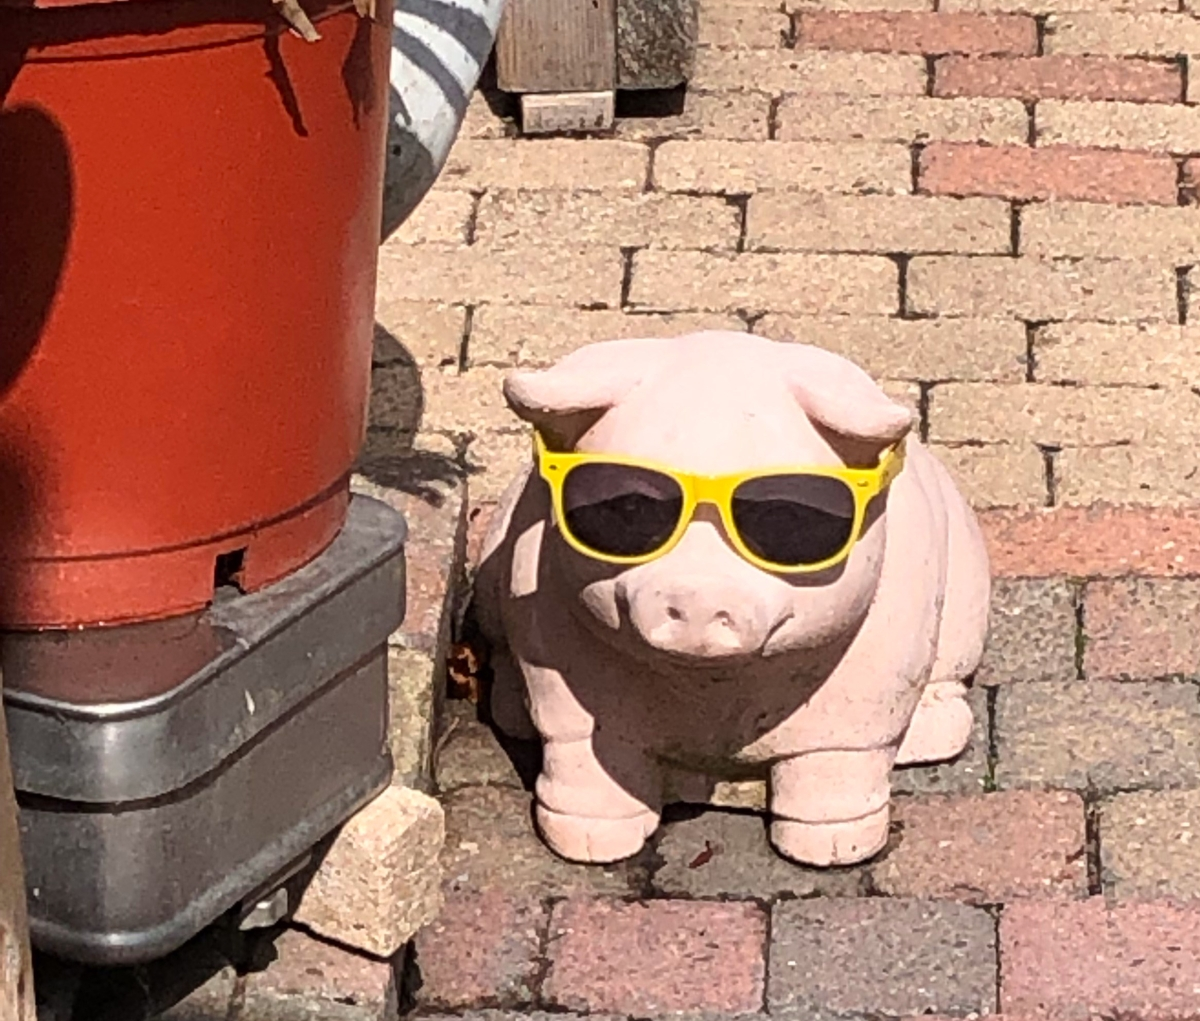 Hummm...A pig with sunglasses! Now that is different!